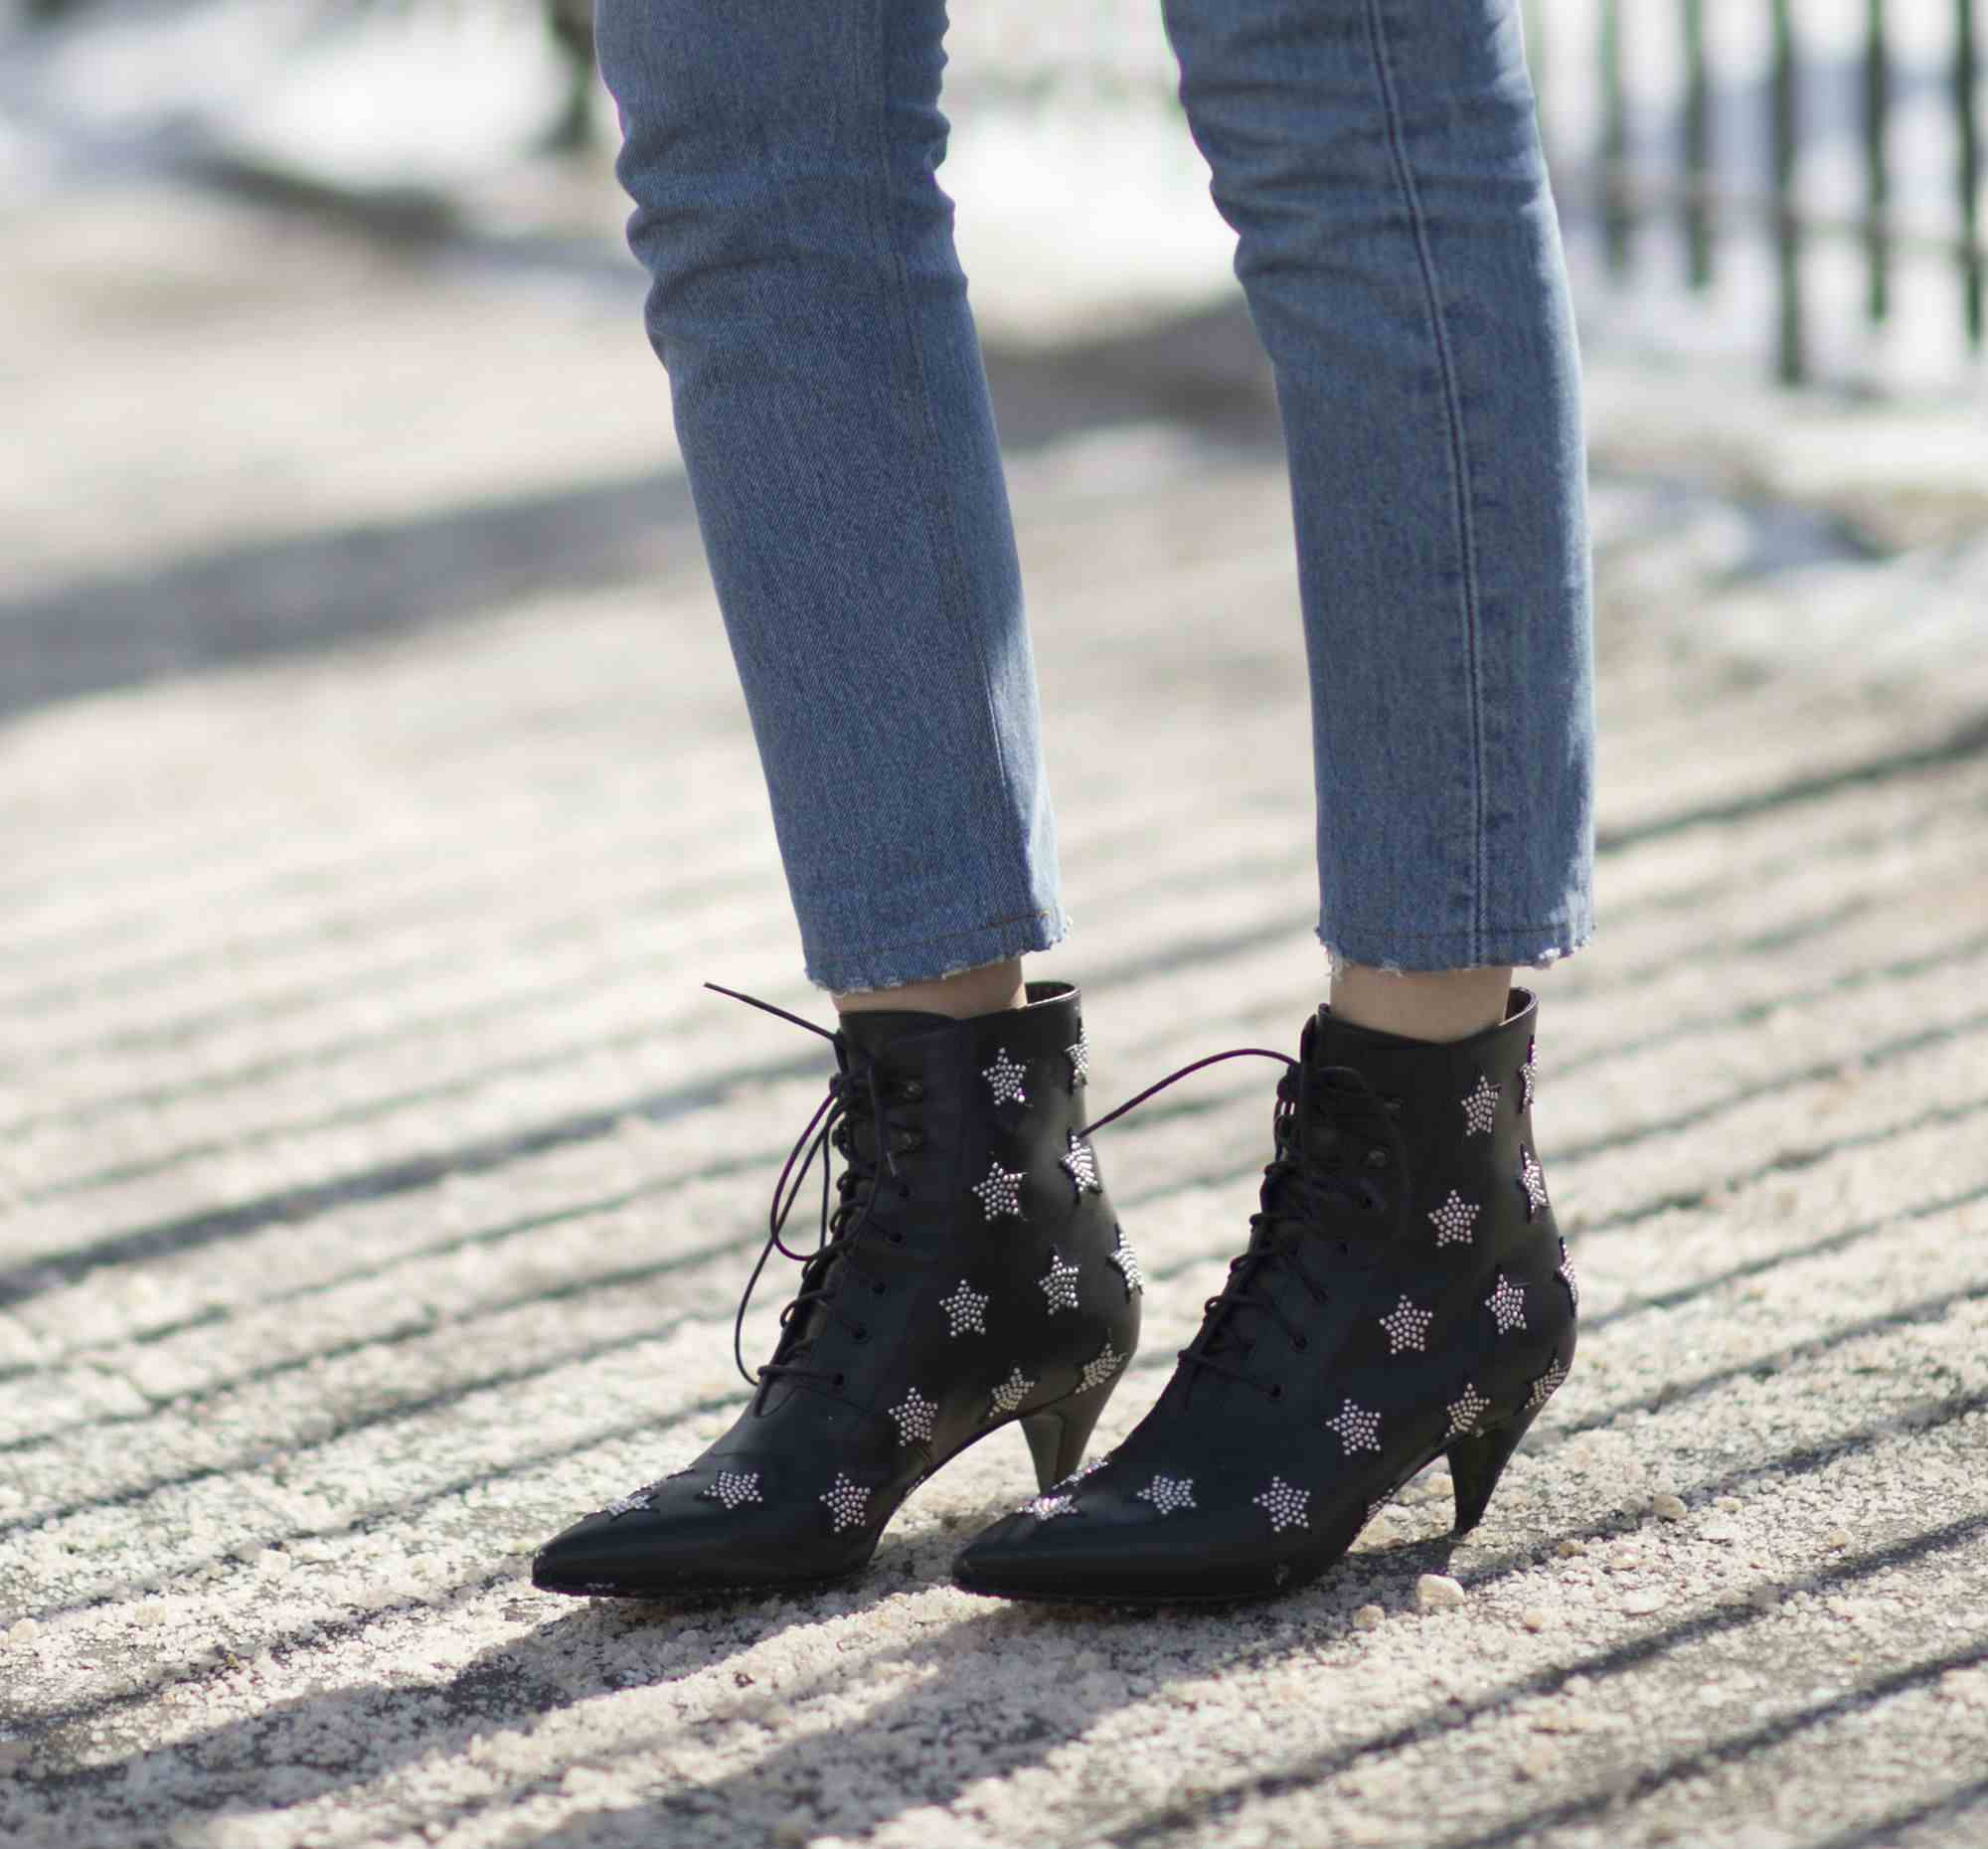 Raw hem jeans and ankle boots